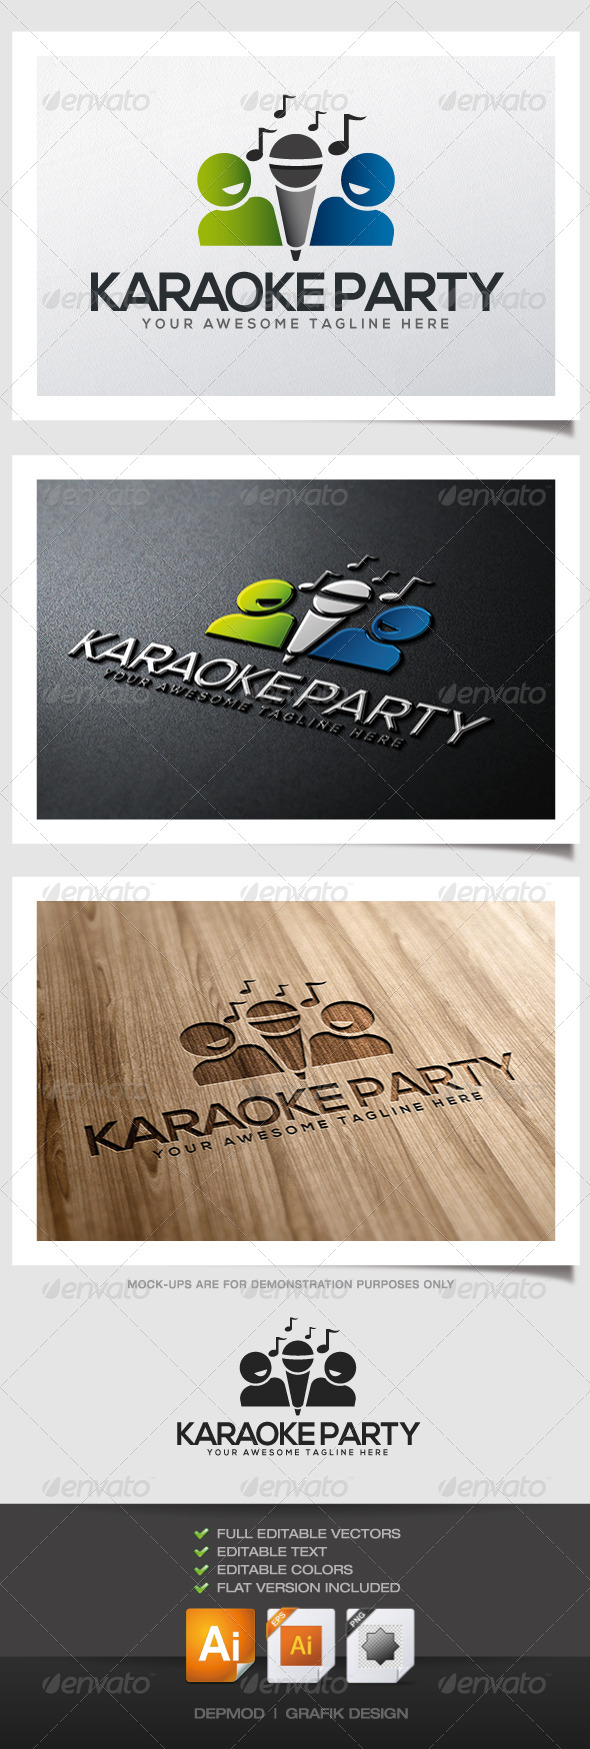 Karaoke Party Logo - Symbols Logo Templates